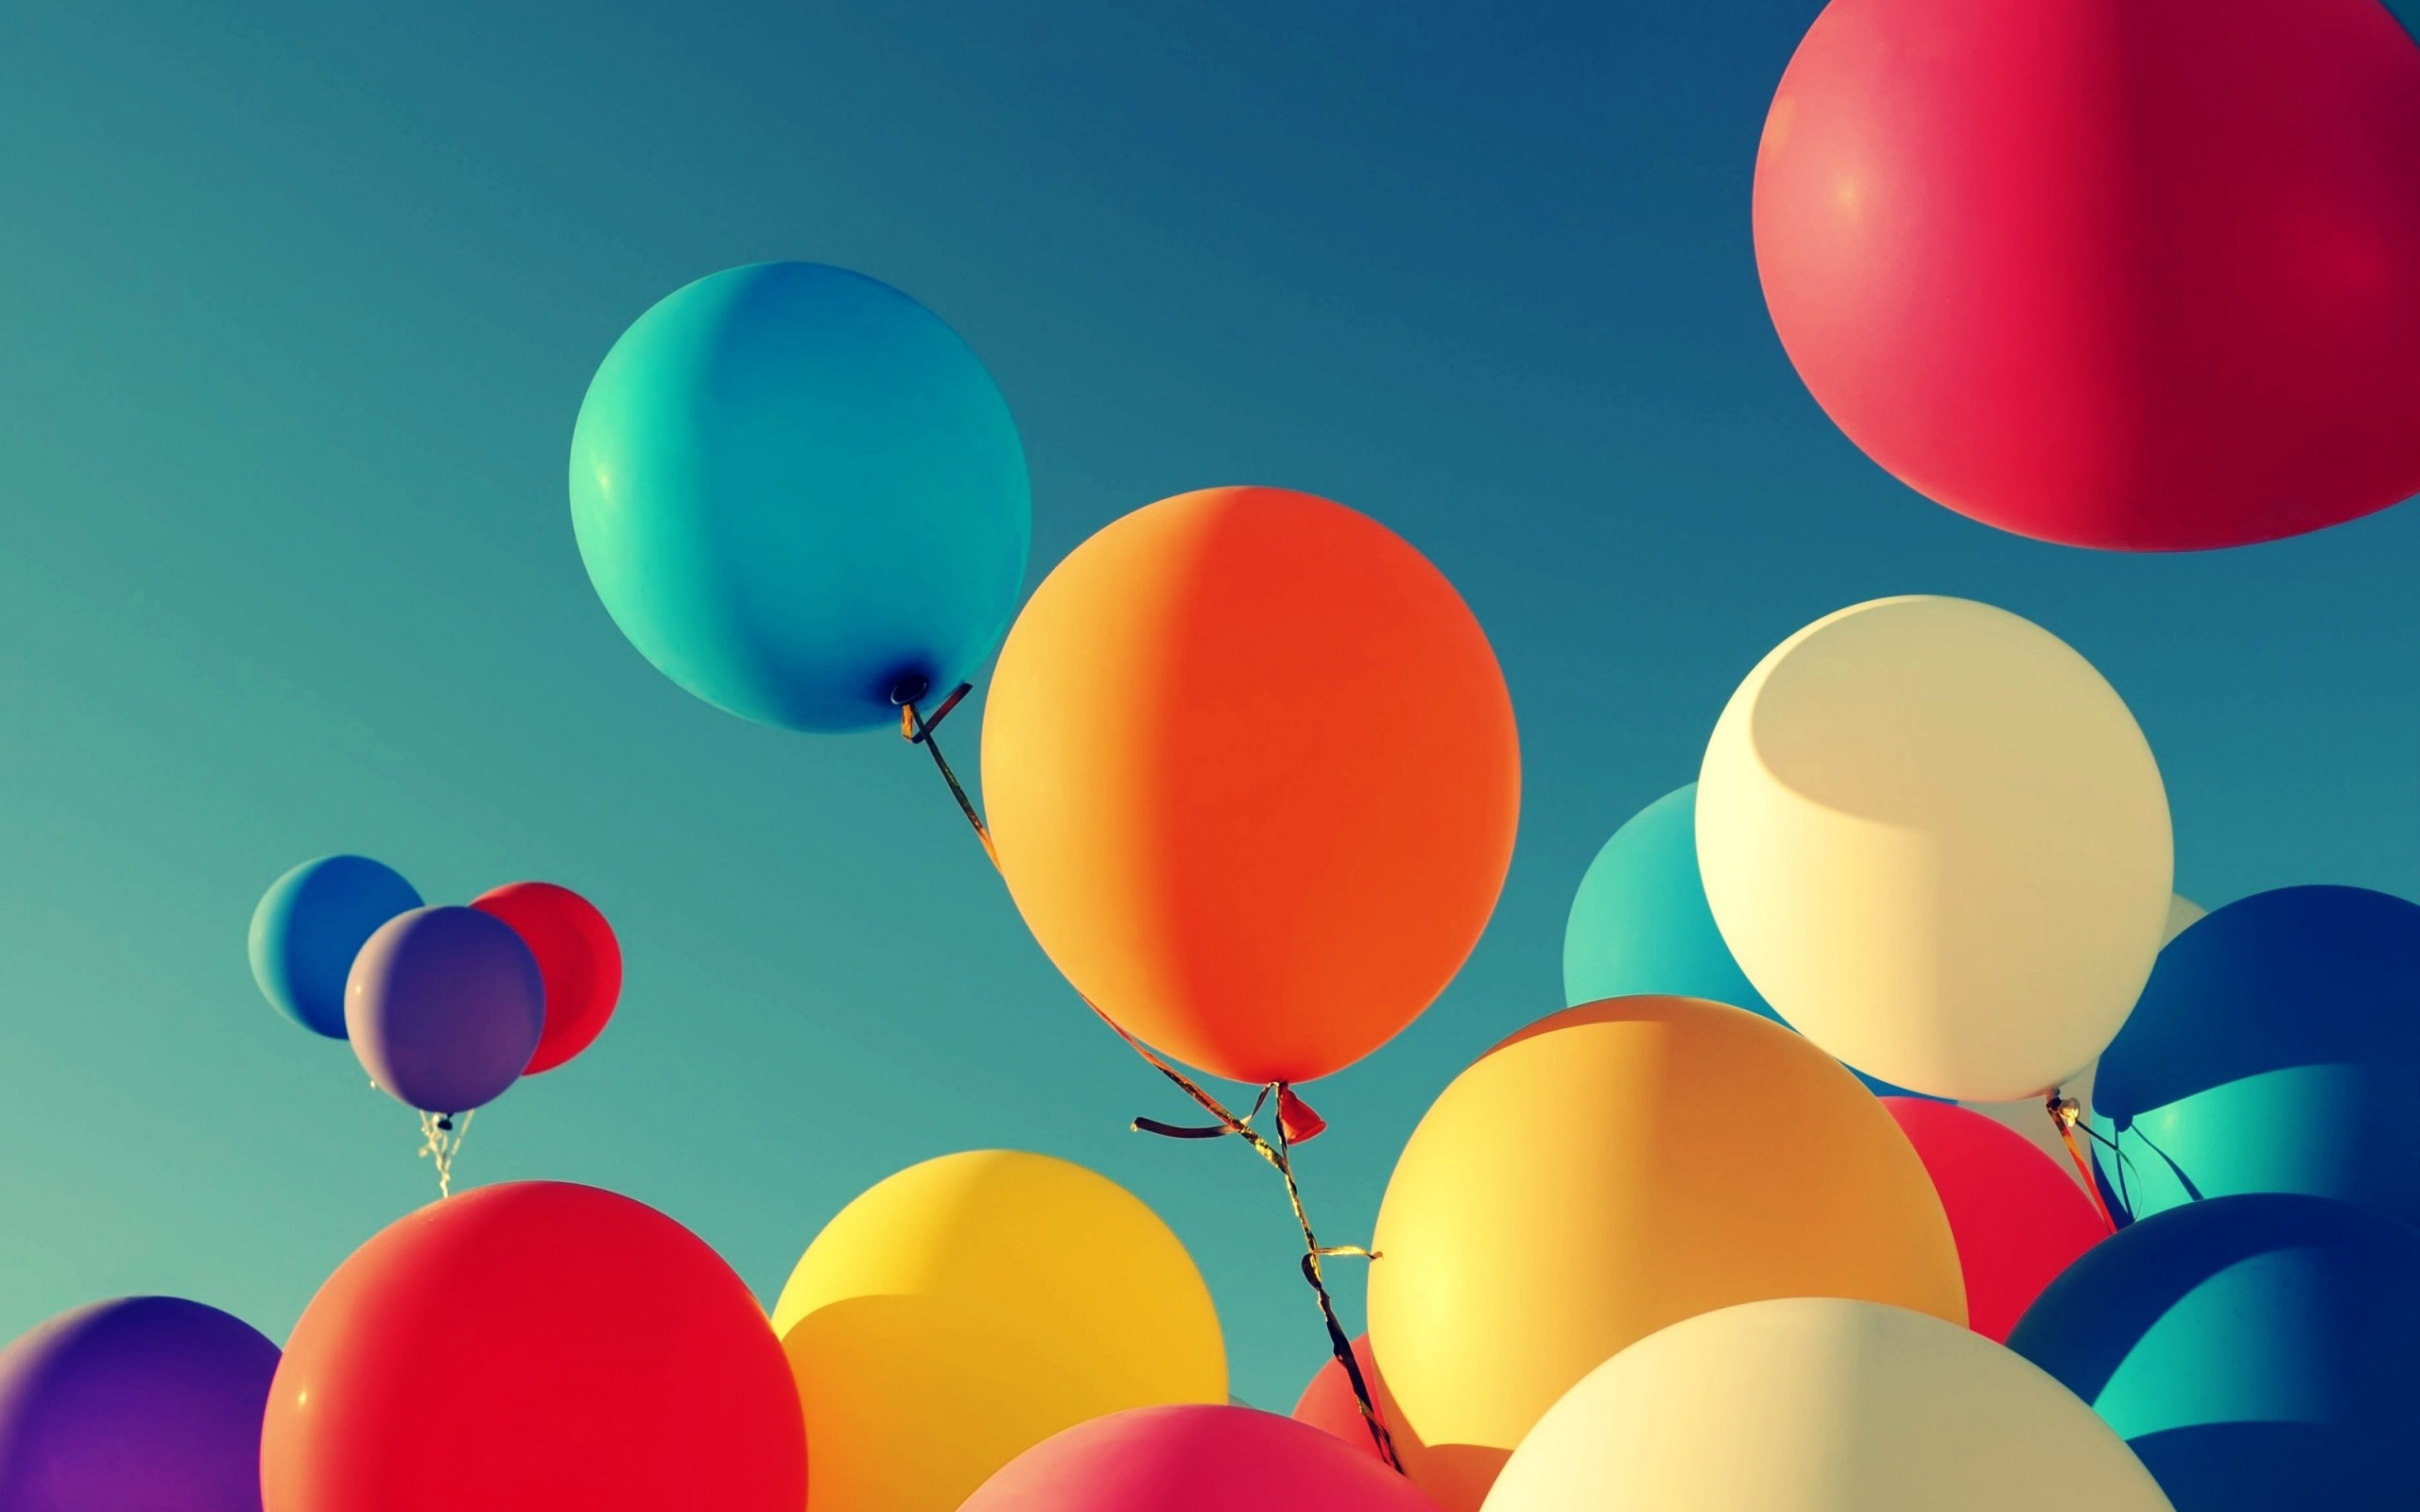 42 balloon hd wallpapers backgrounds wallpaper abyss